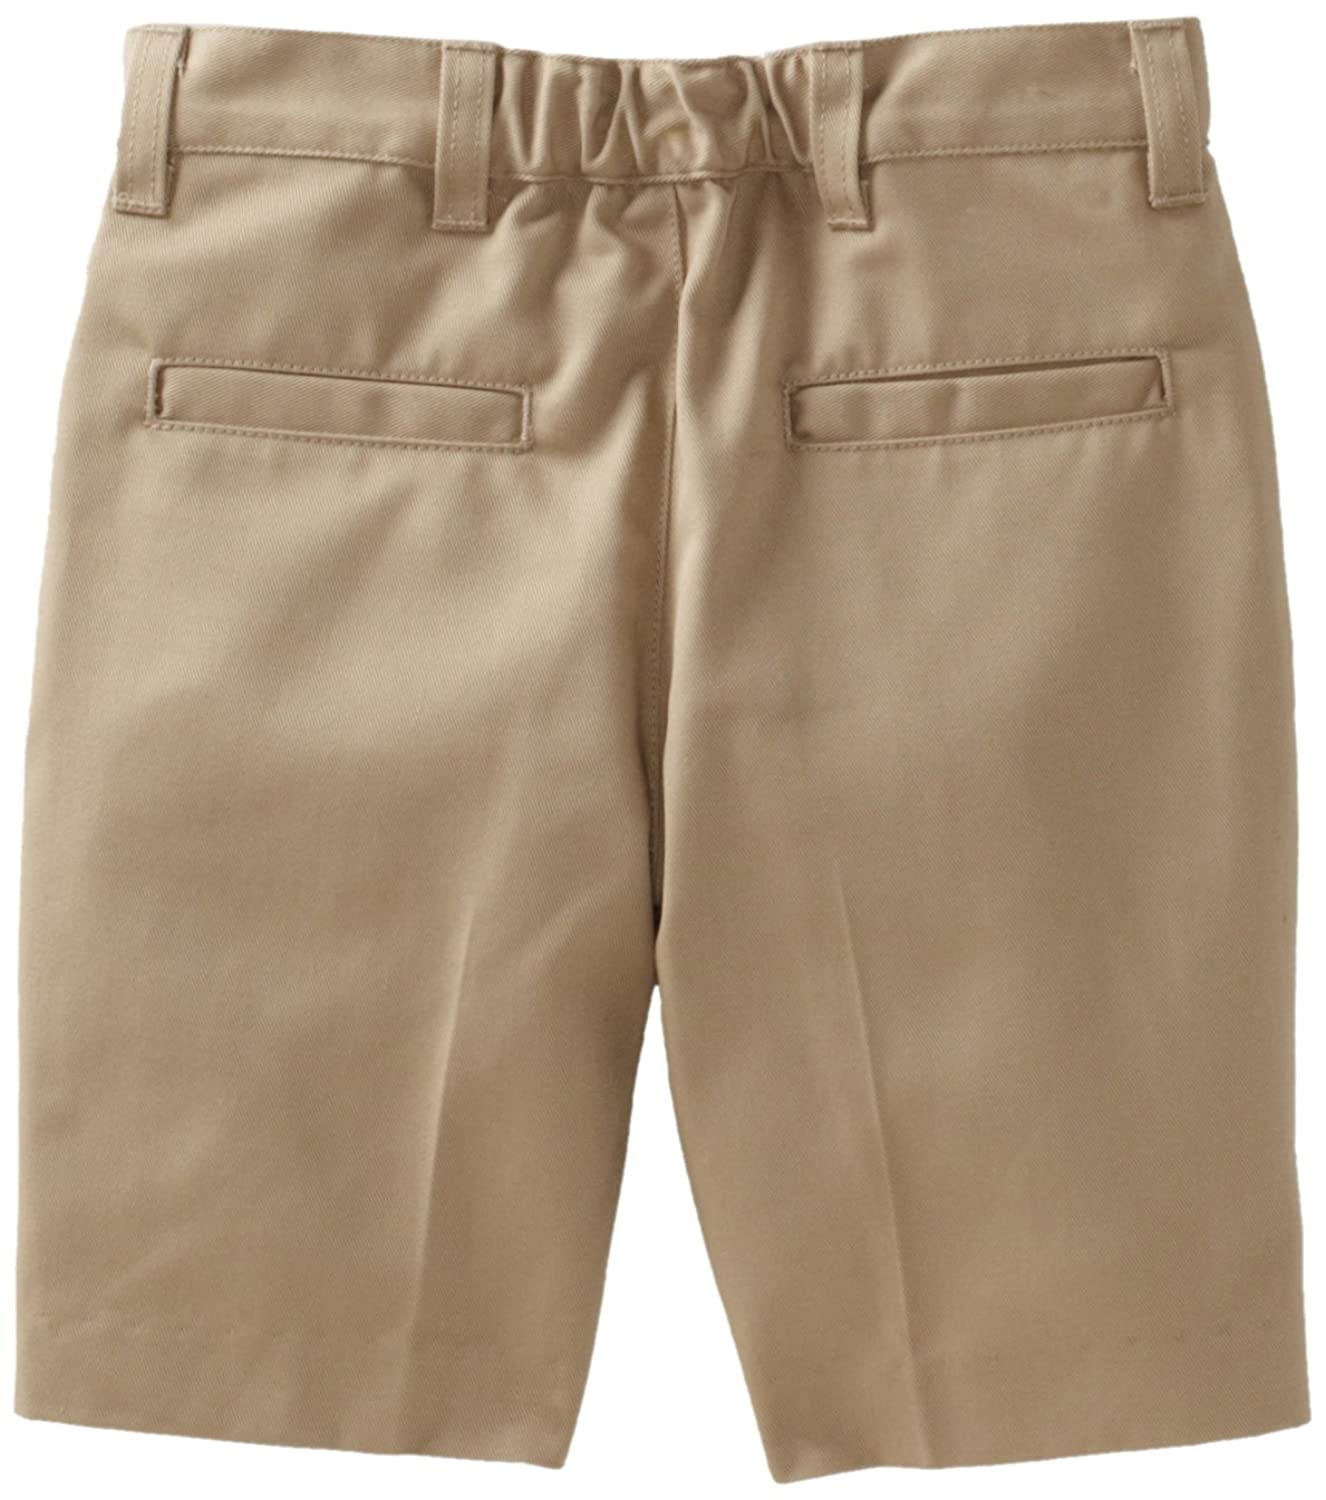 Amazon.com: Classroom Little Boys' Uniform Flat Front Short ...